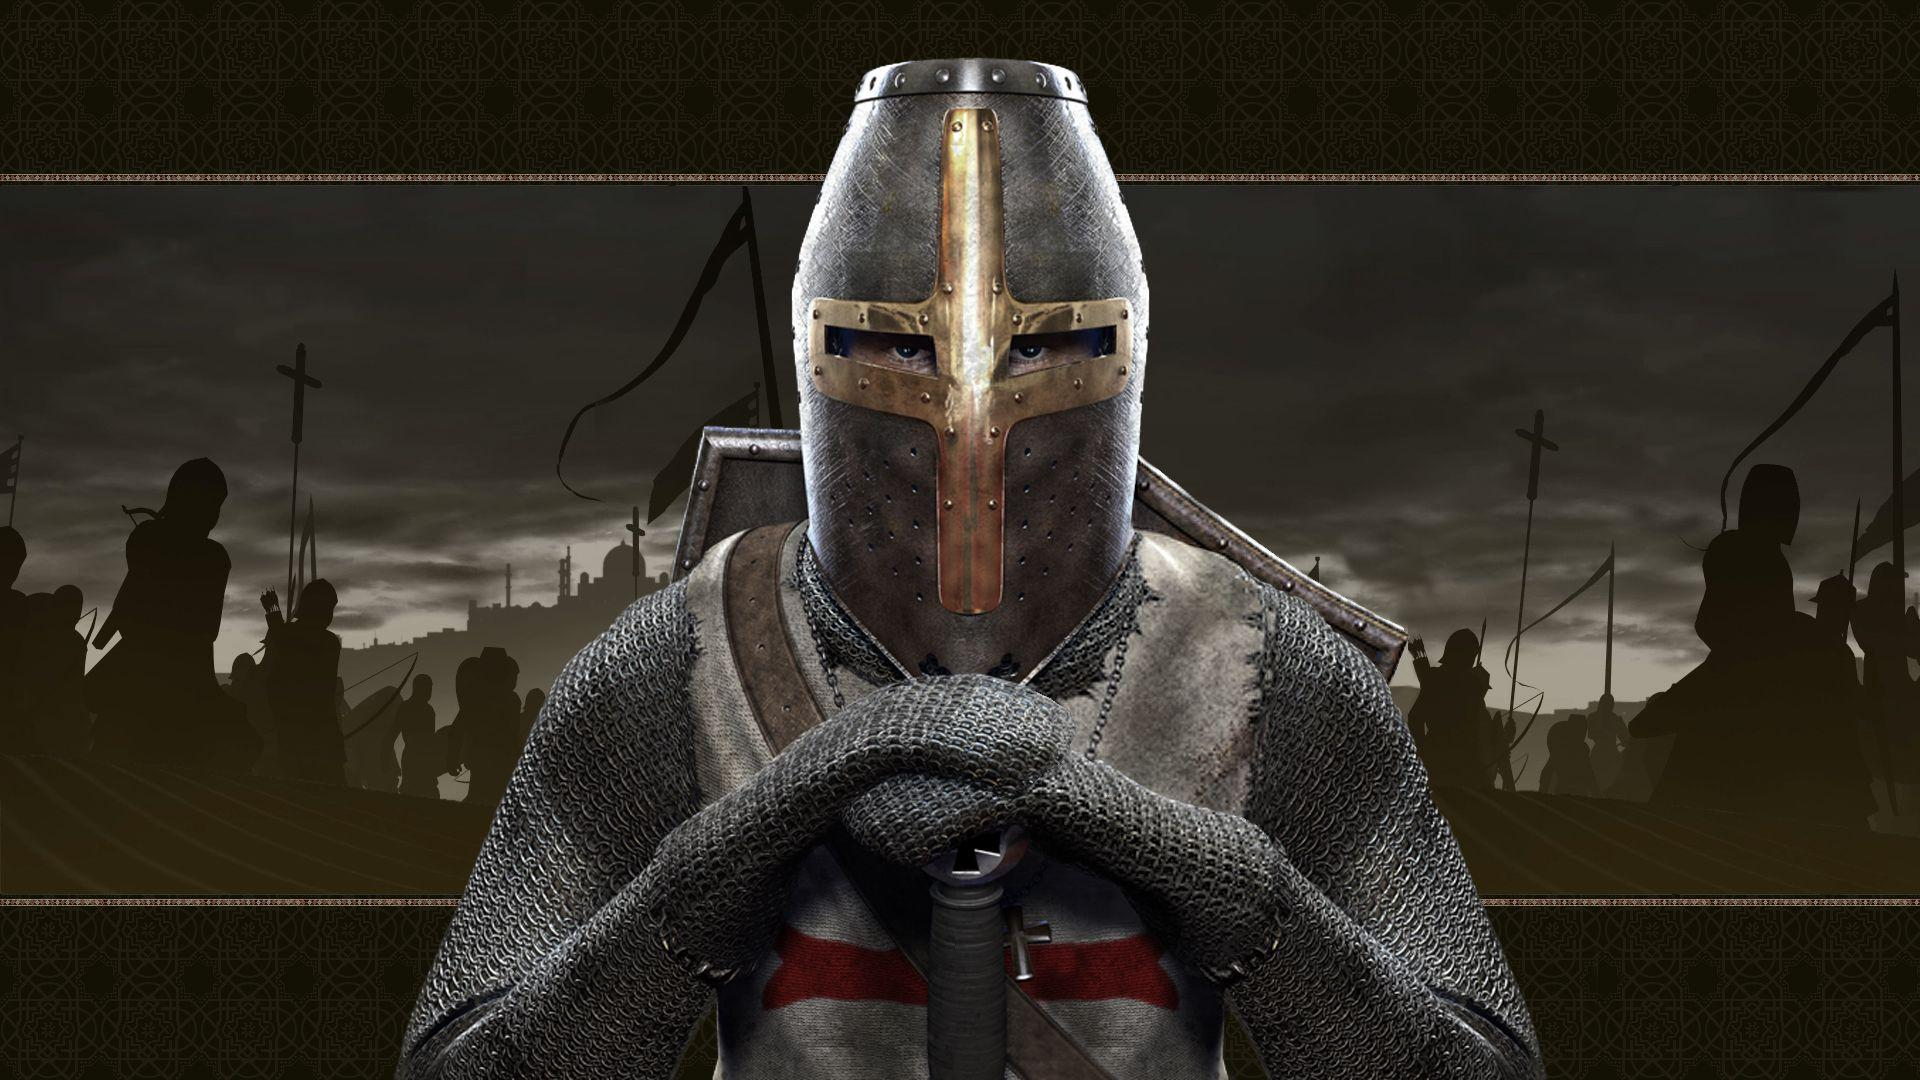 Crusader Knight Full HD Wallpapers and Backgrounds Image